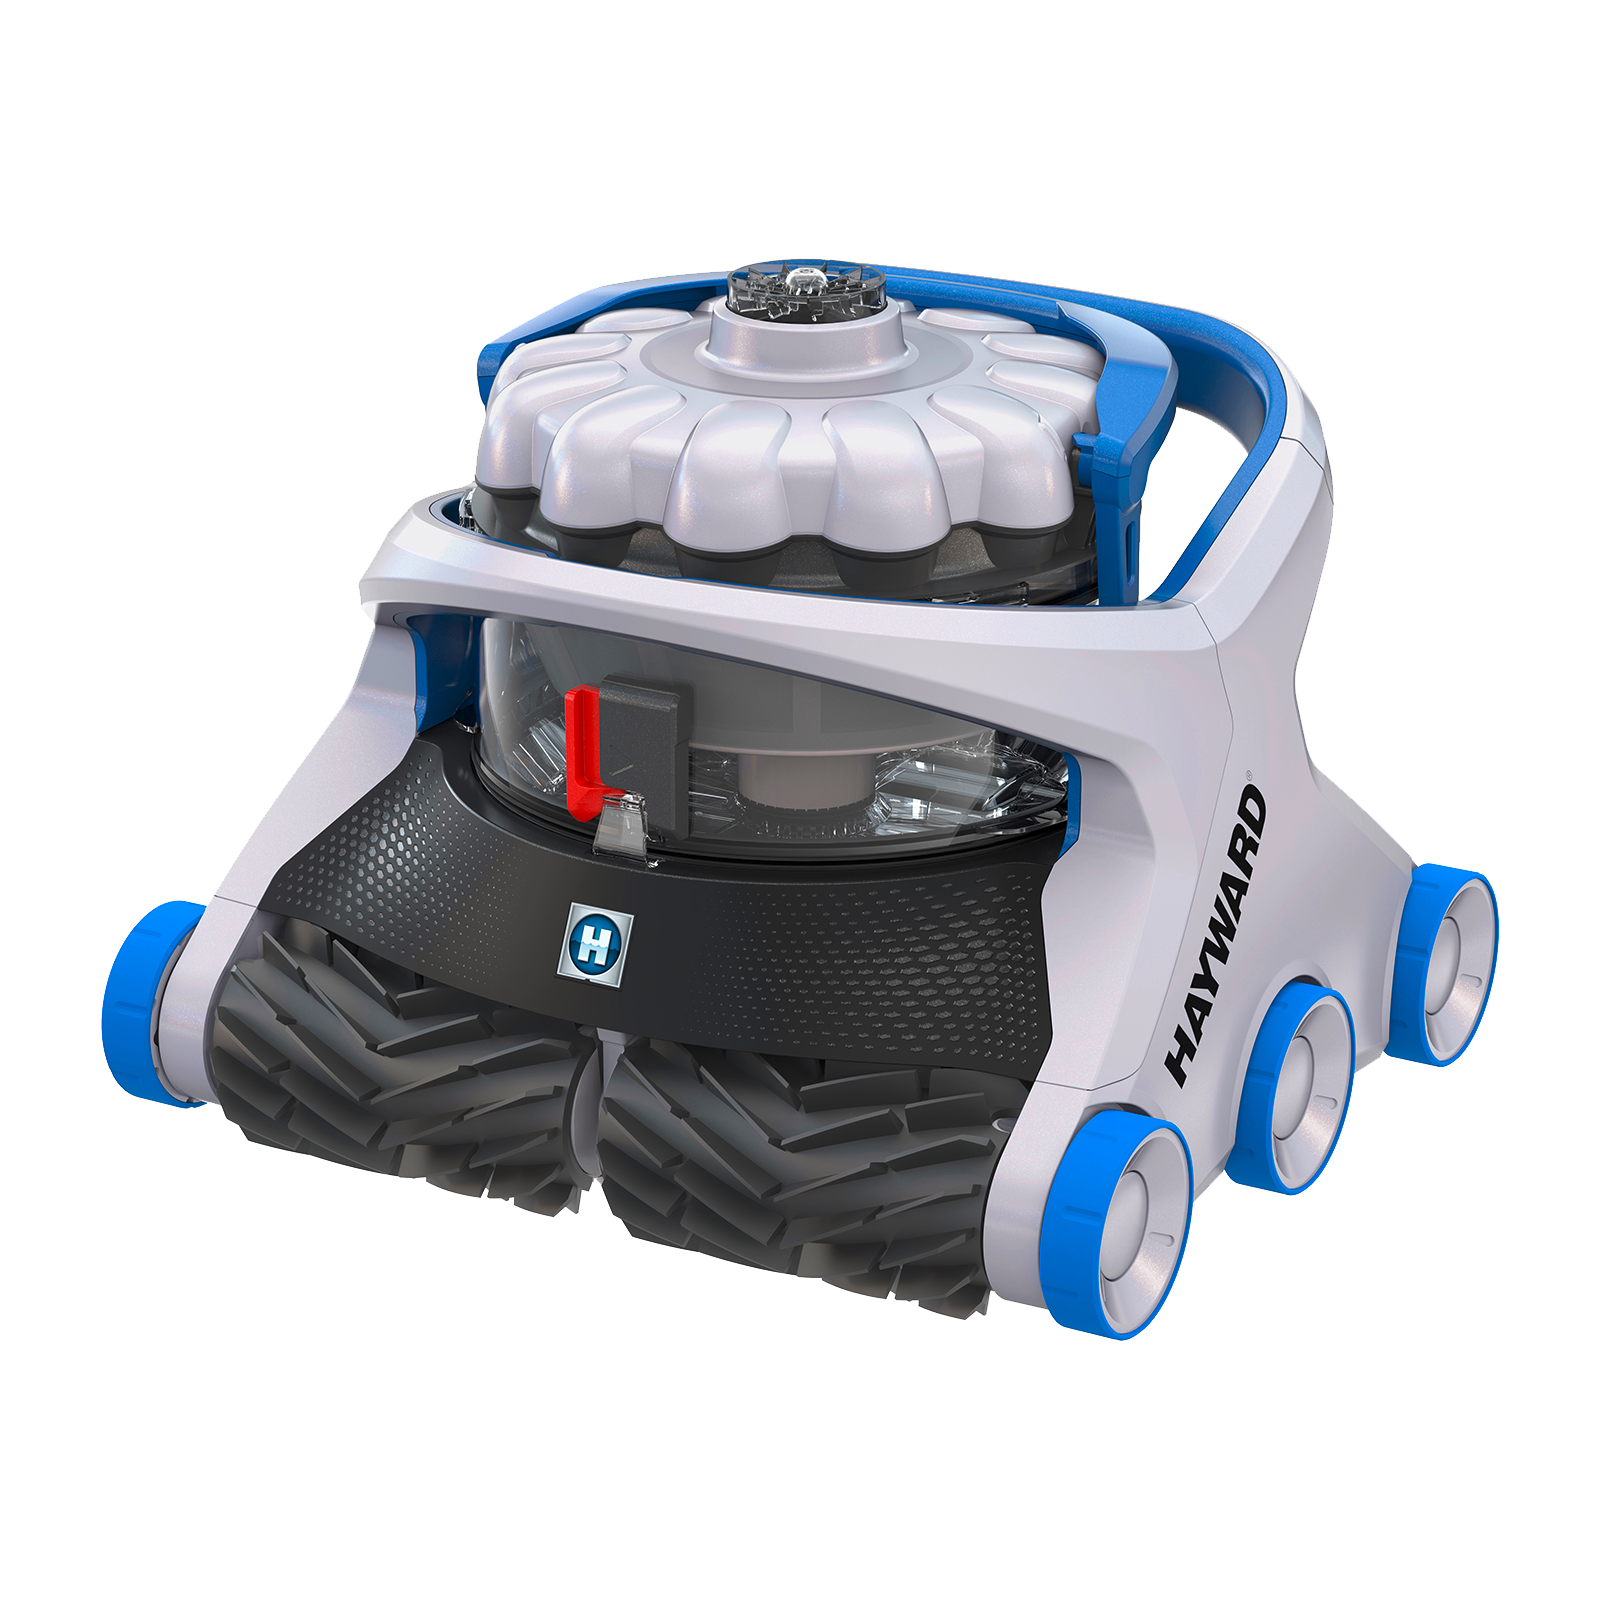 AquaVac® 6 Series Robot